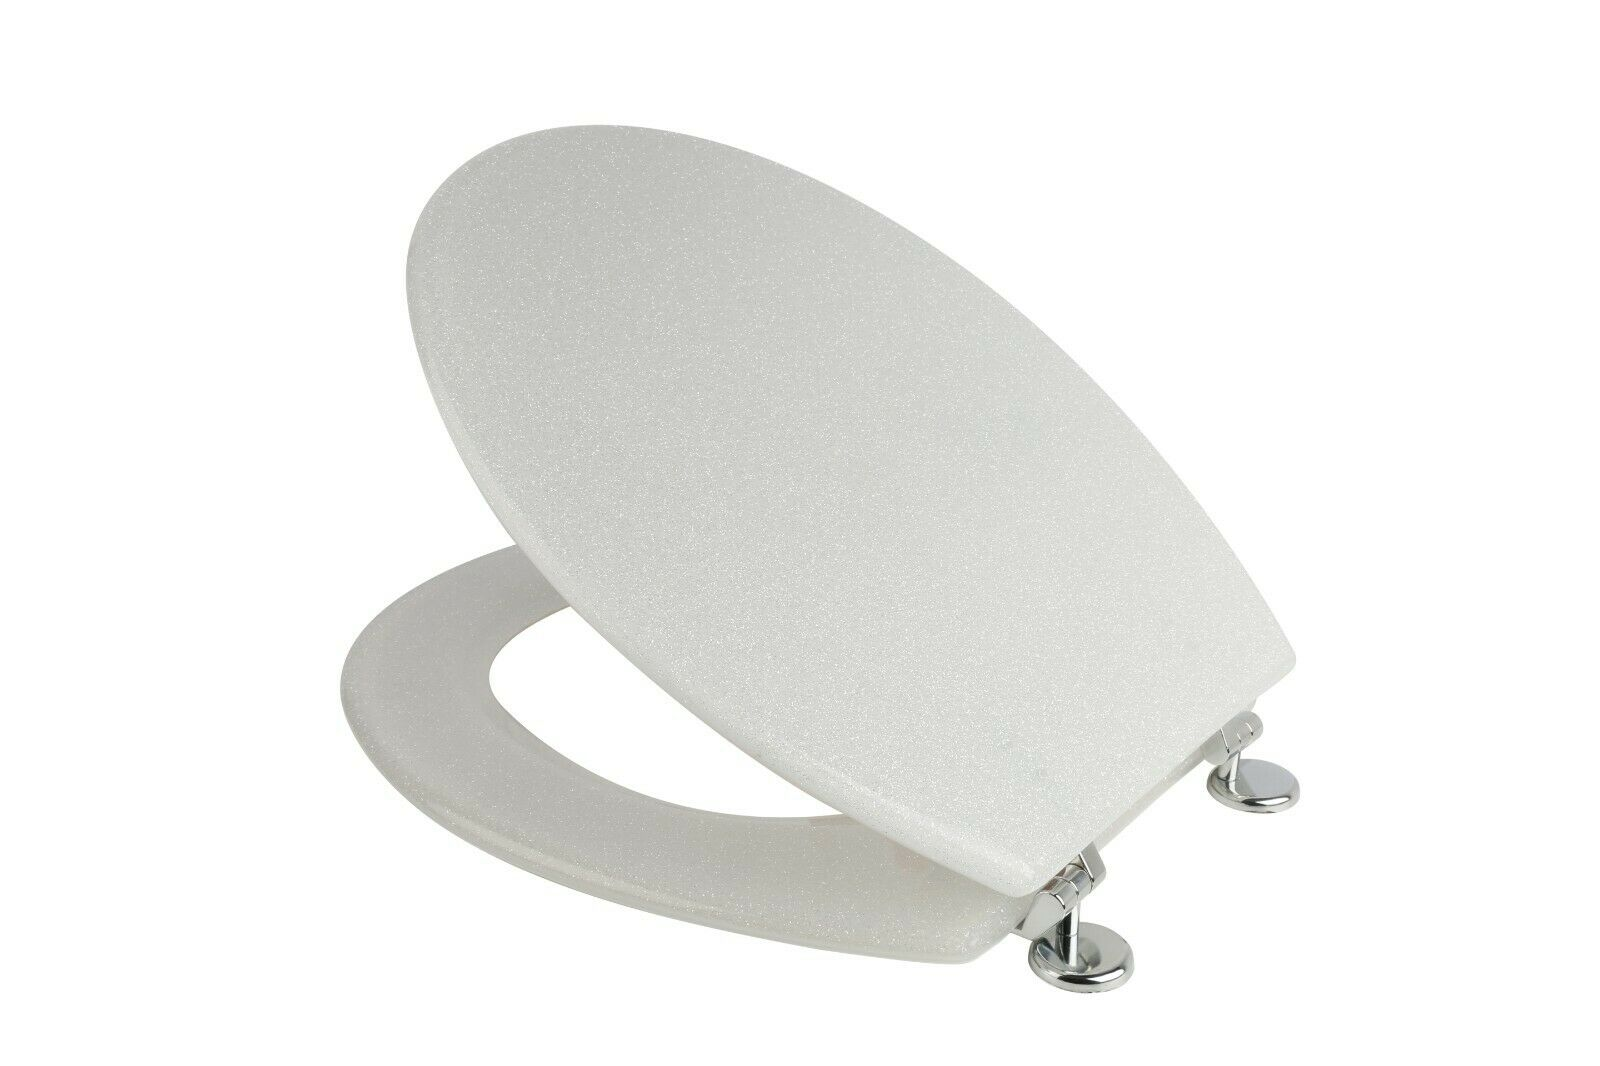 Wondrous Croydex Wl101022 Toilet Seat White Glitter Gmtry Best Dining Table And Chair Ideas Images Gmtryco